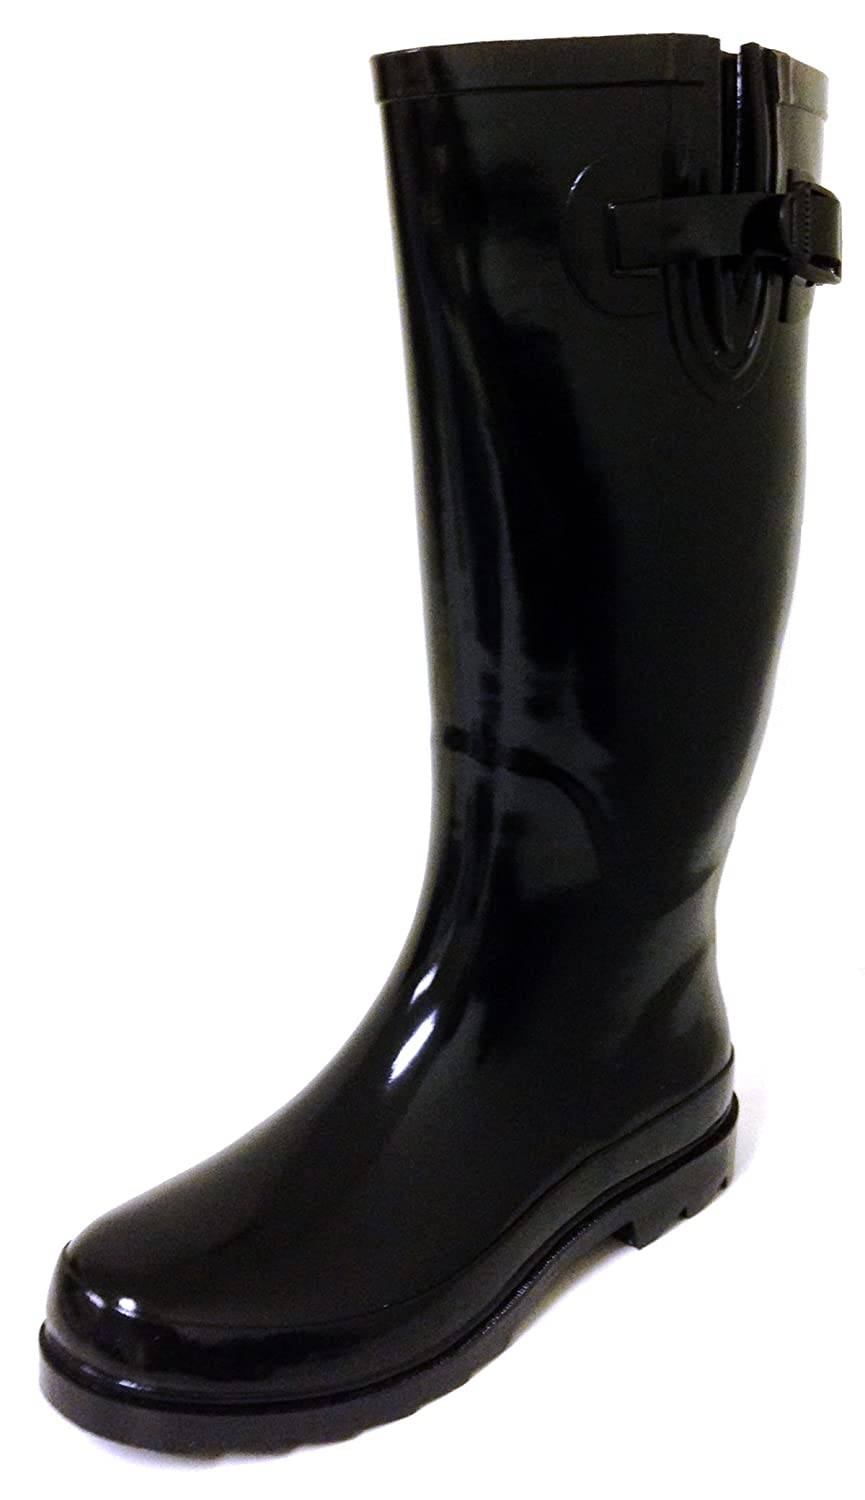 Black G4U Women's Rain Boots Multiple Styles color Mid Calf Wellies Buckle Fashion Rubber Knee High Snow shoes